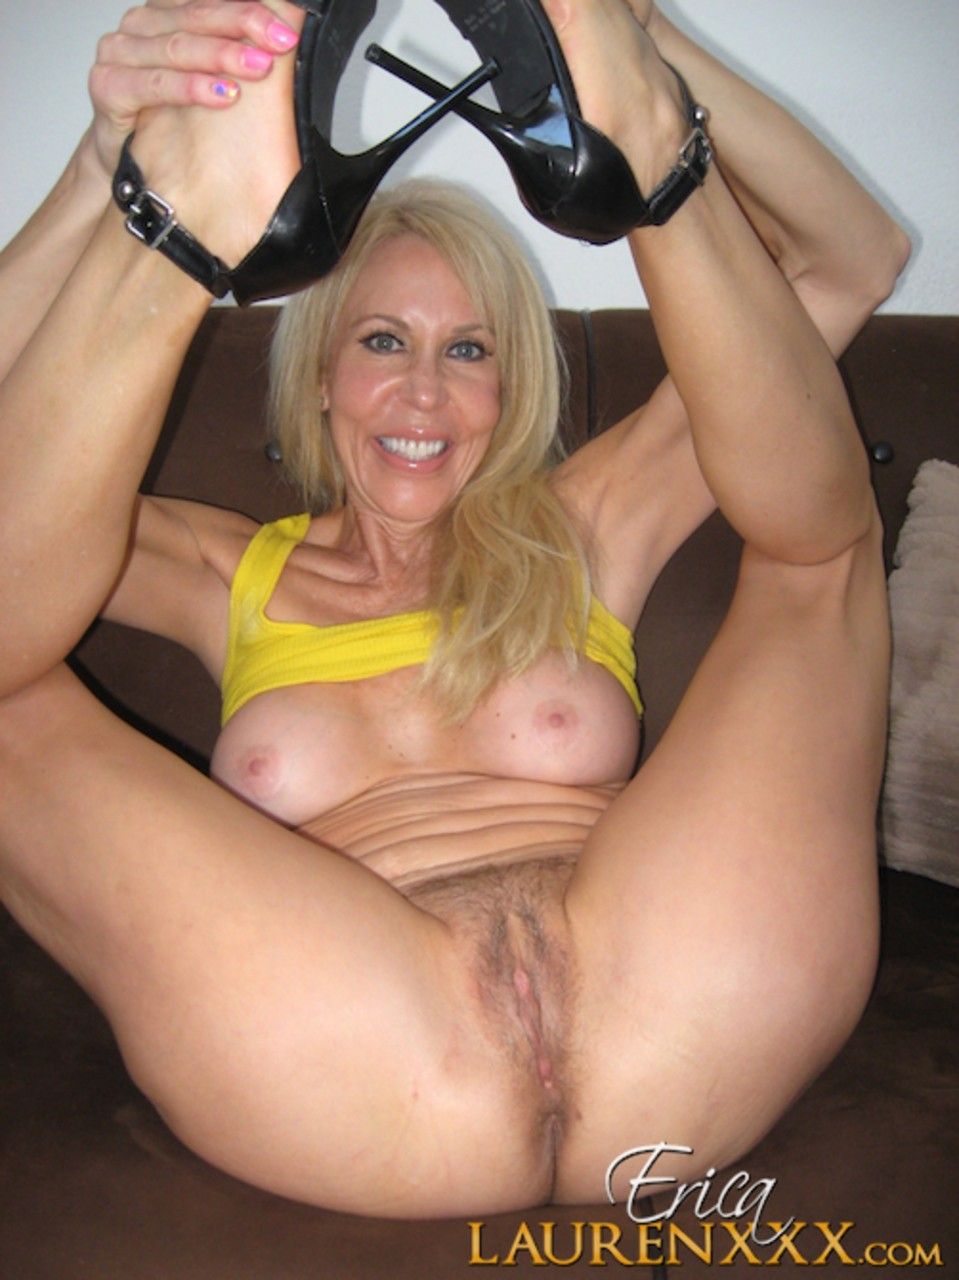 Docfuckcom Close Up Naked Images! Hot mature woman Erica Lauren stands naked after lingerie and thong removal!